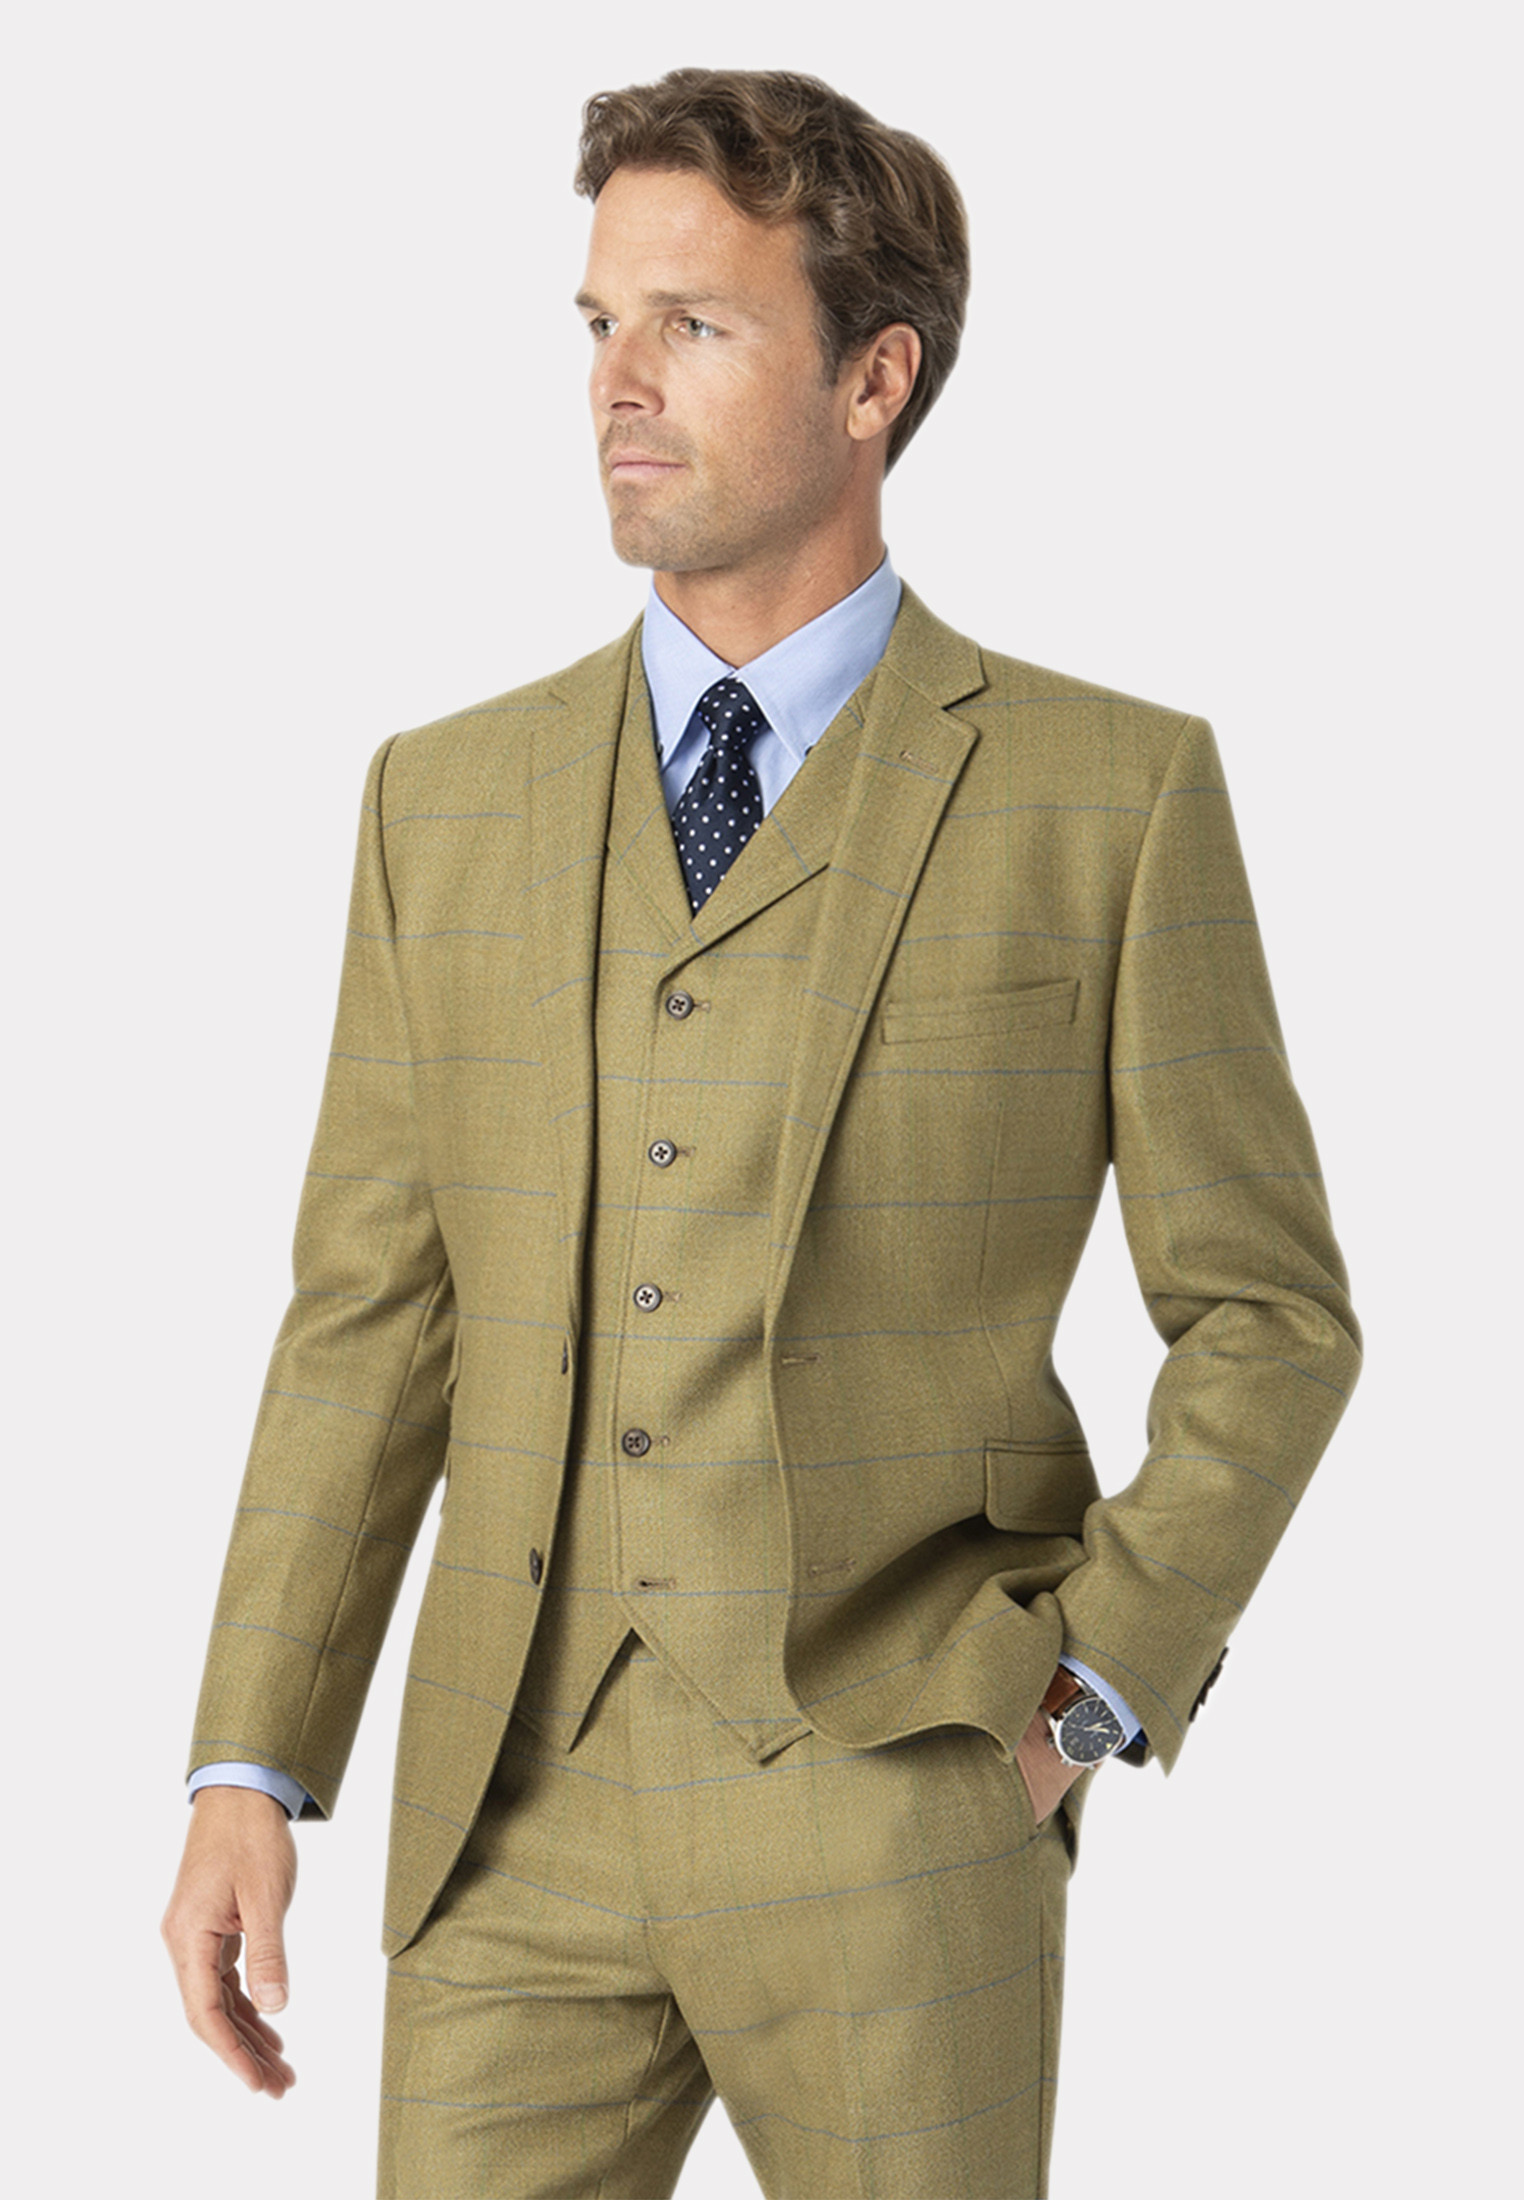 Fountains Sage Check Pure New Wool Suit Jacket